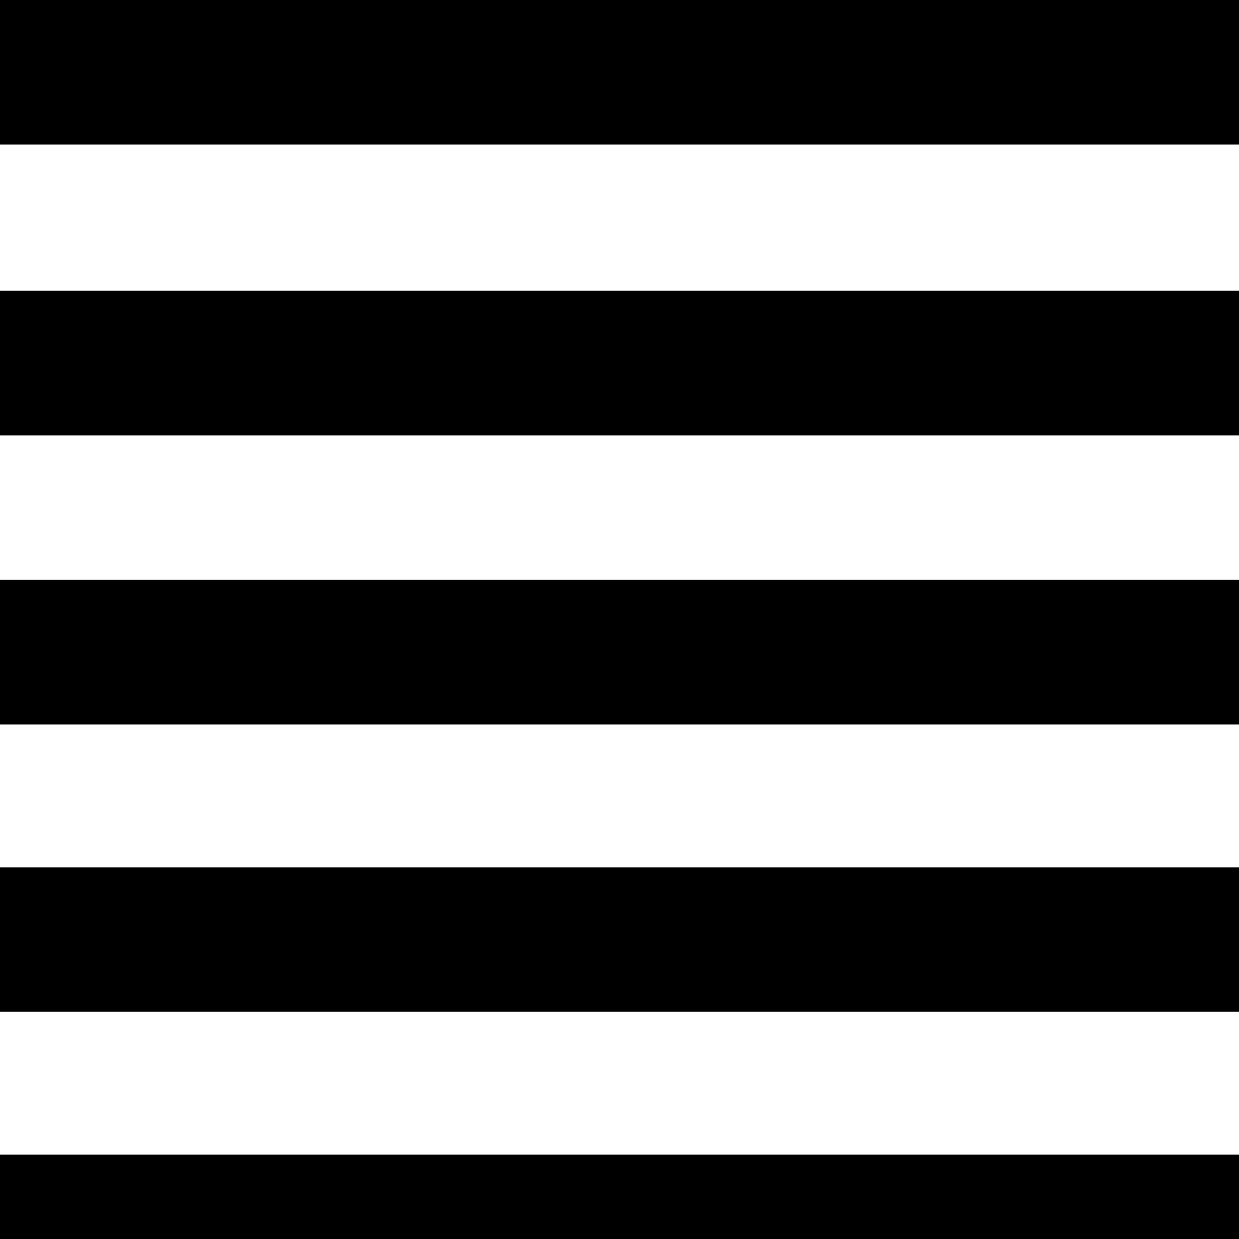 Home Backdrops Stripes Black and White Horizontal stripes 1239x1239